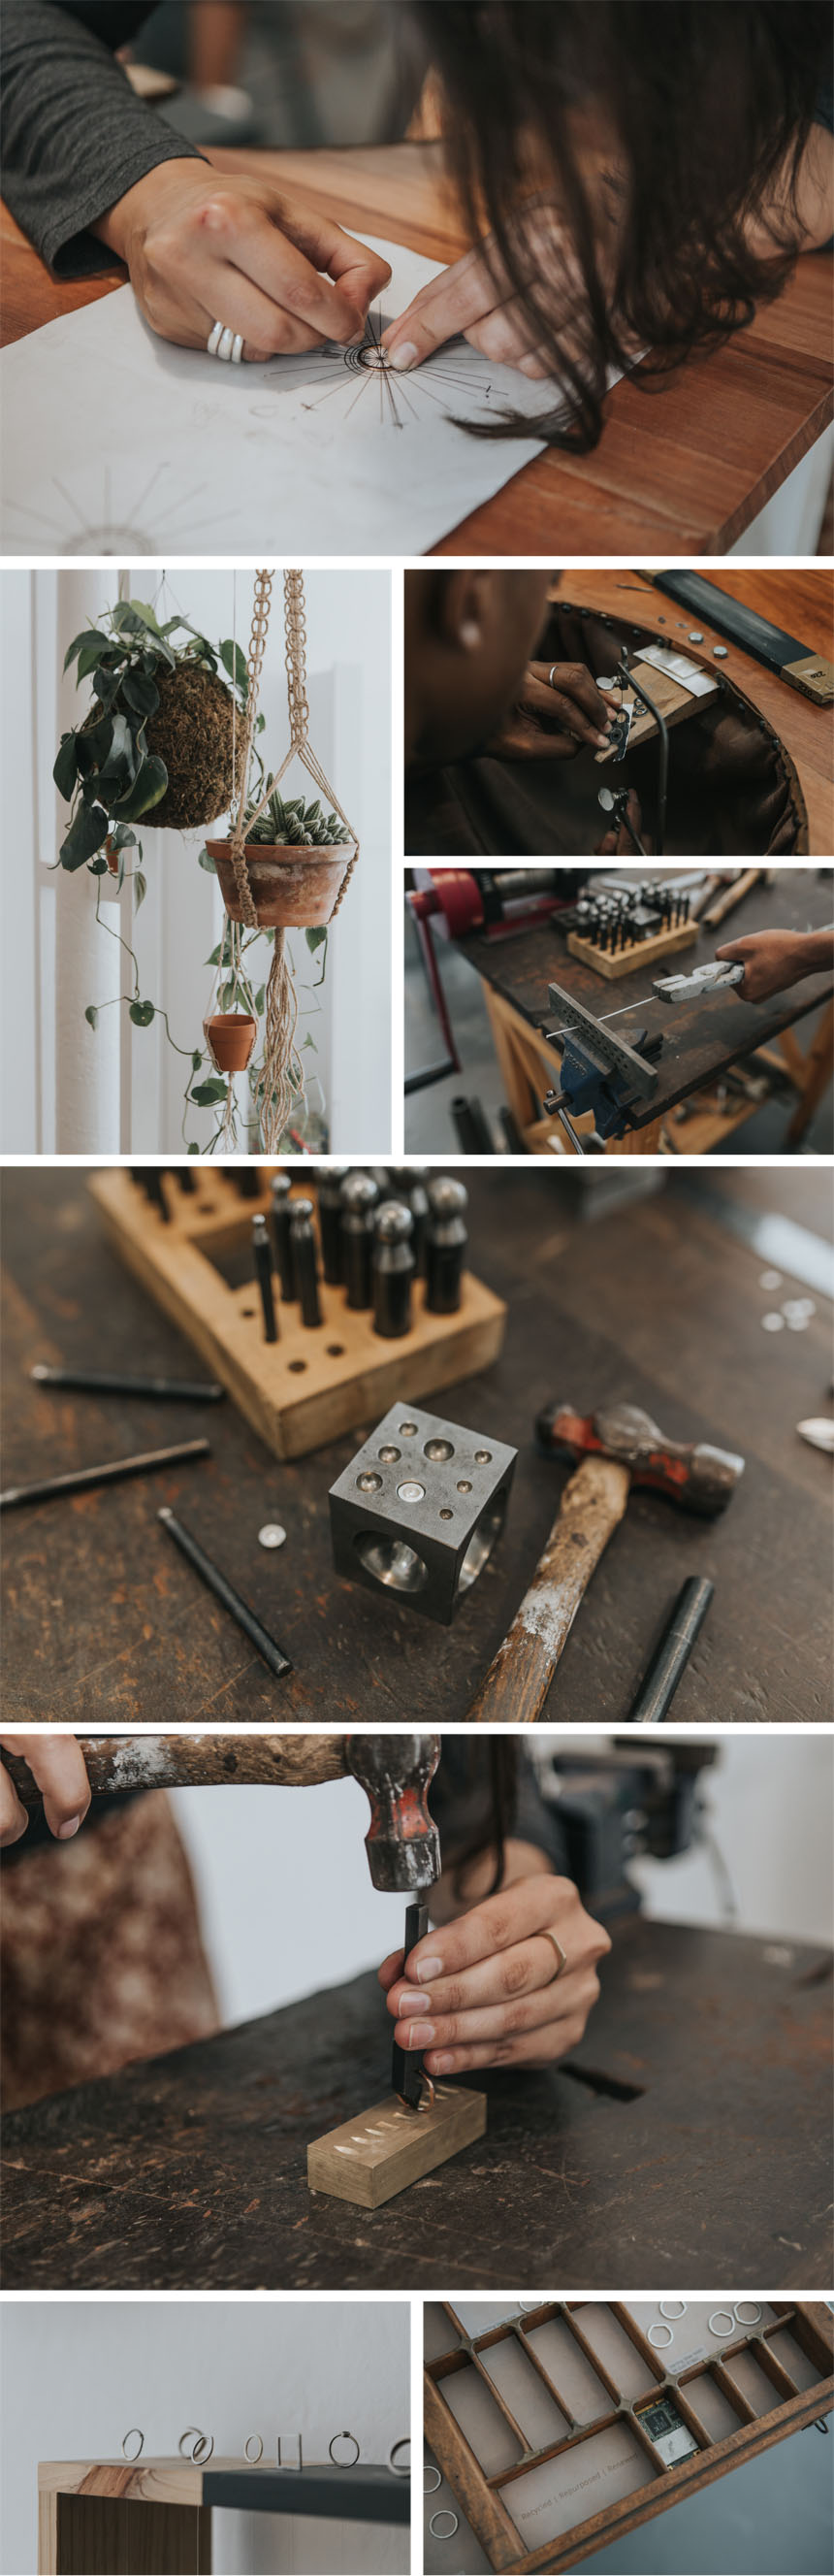 Makers Diary- Handcrafted jewellery